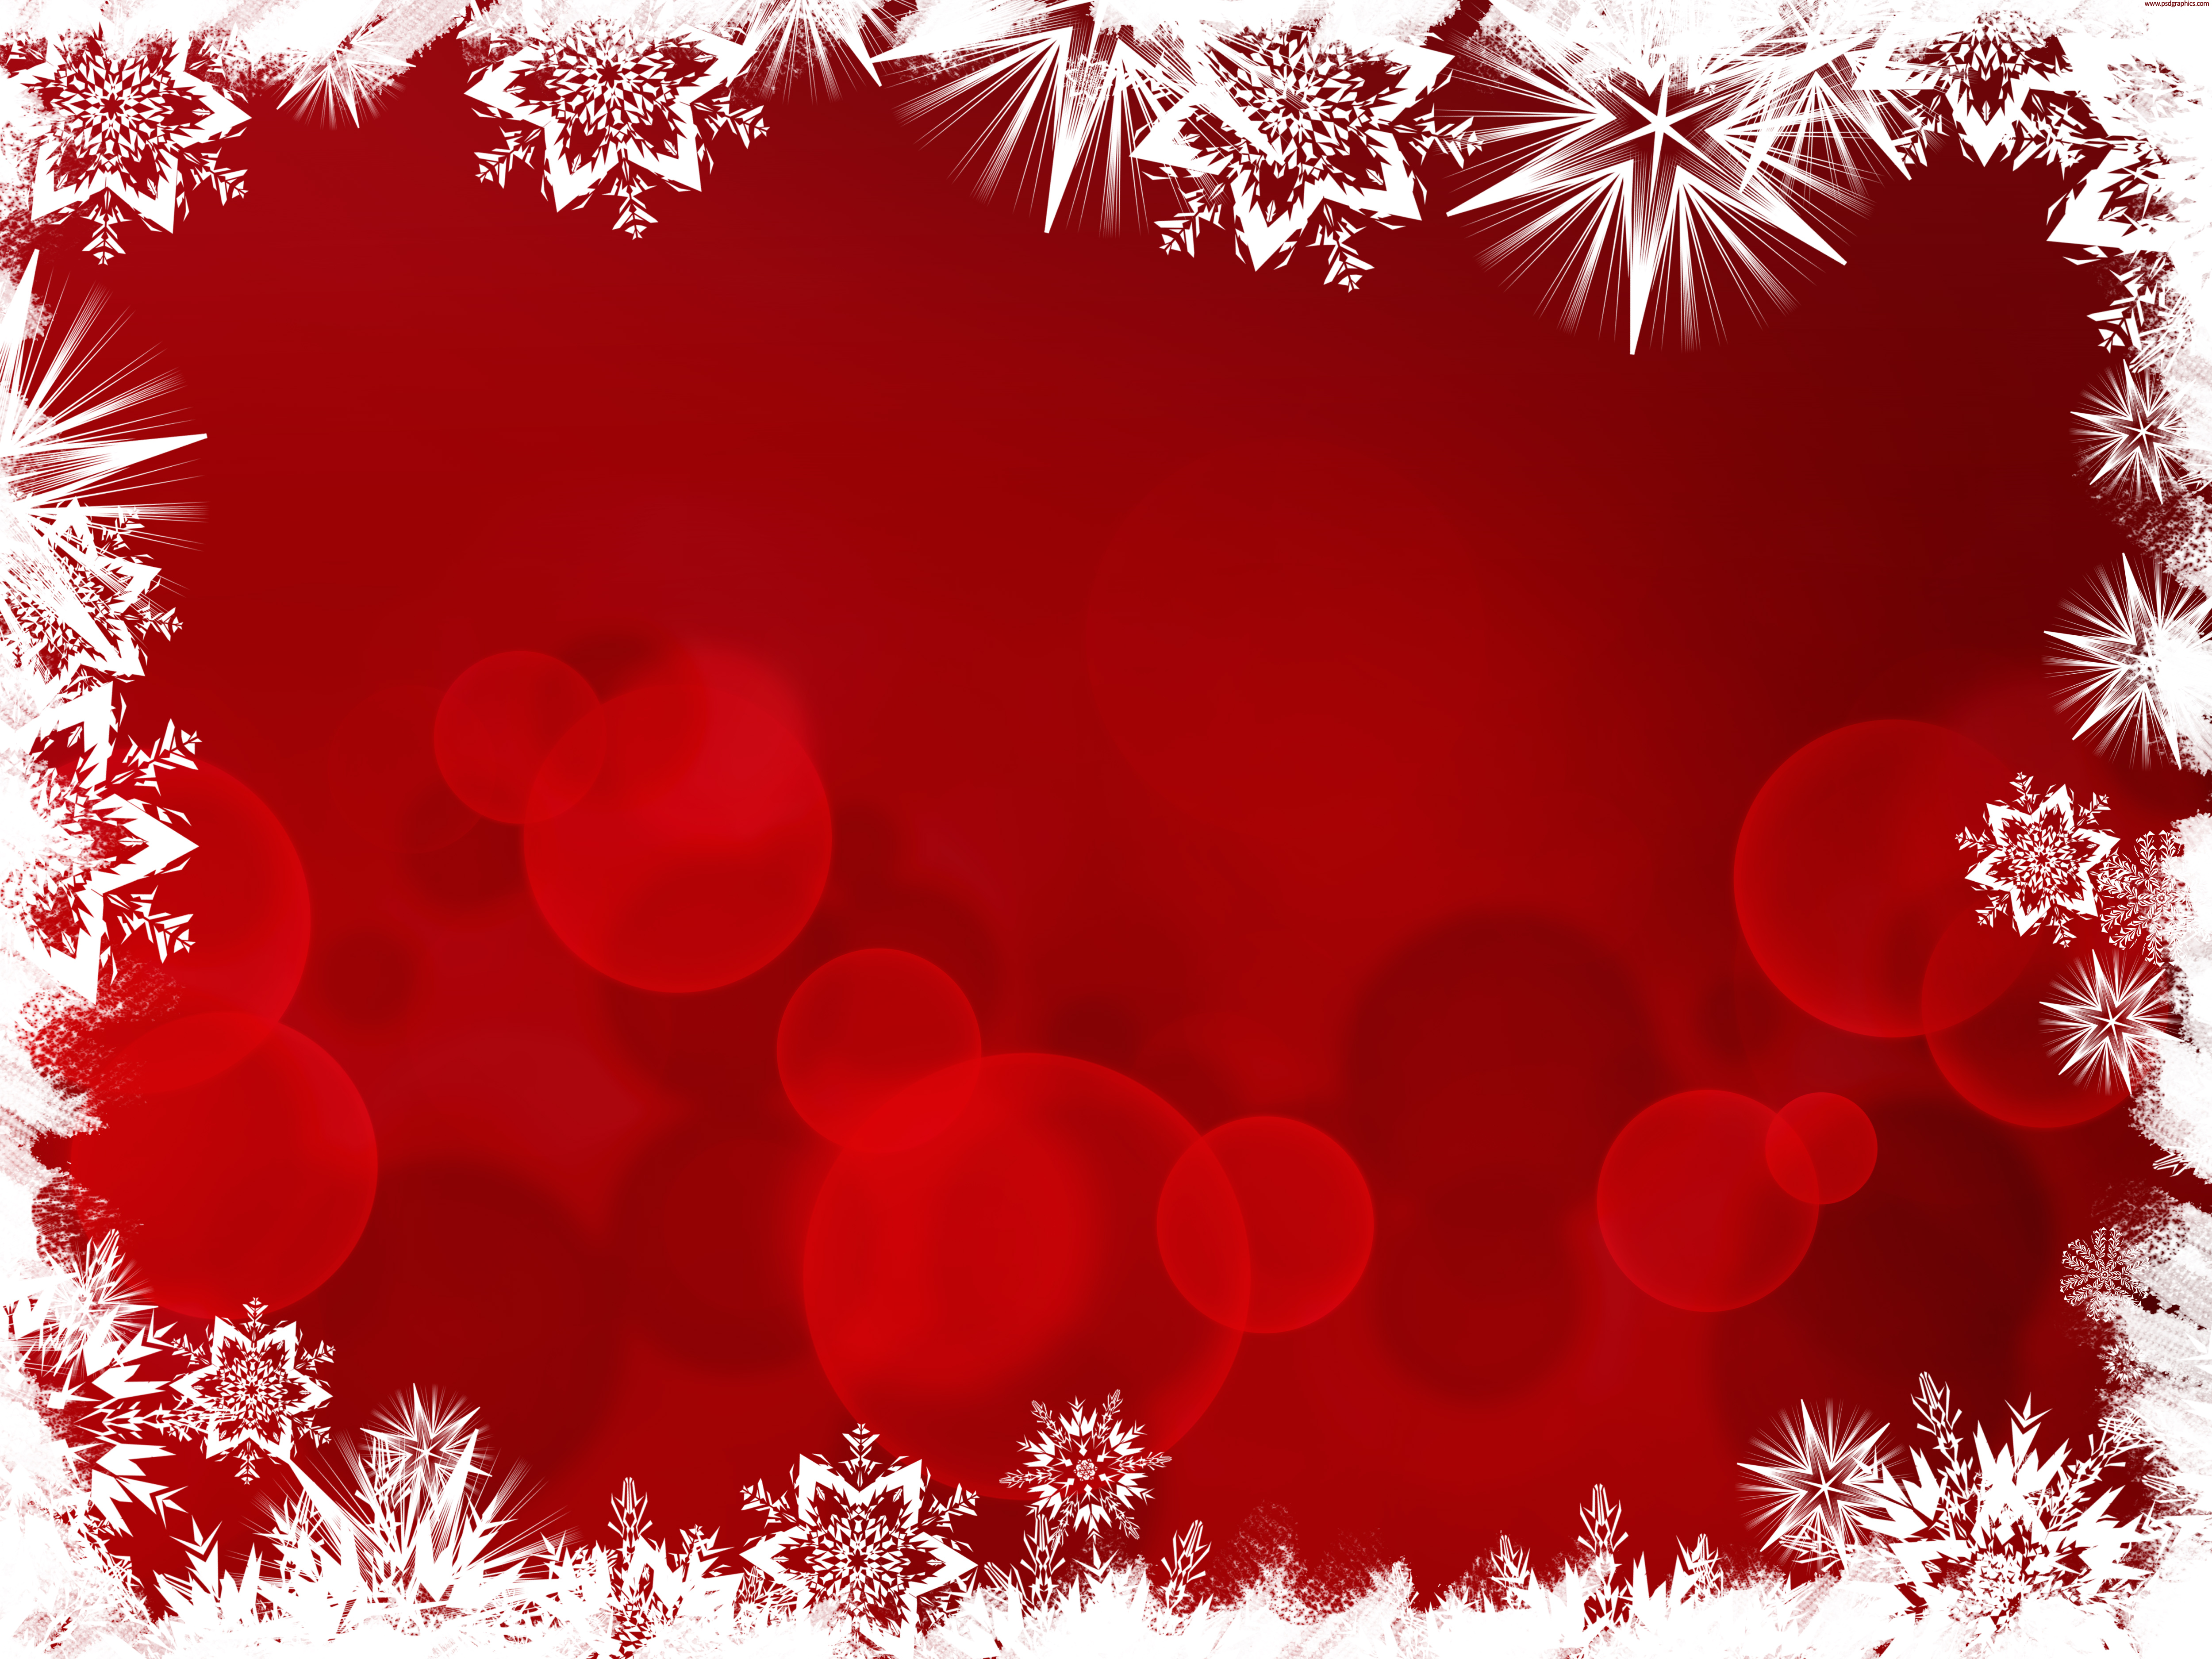 Blank Christmas background #3512